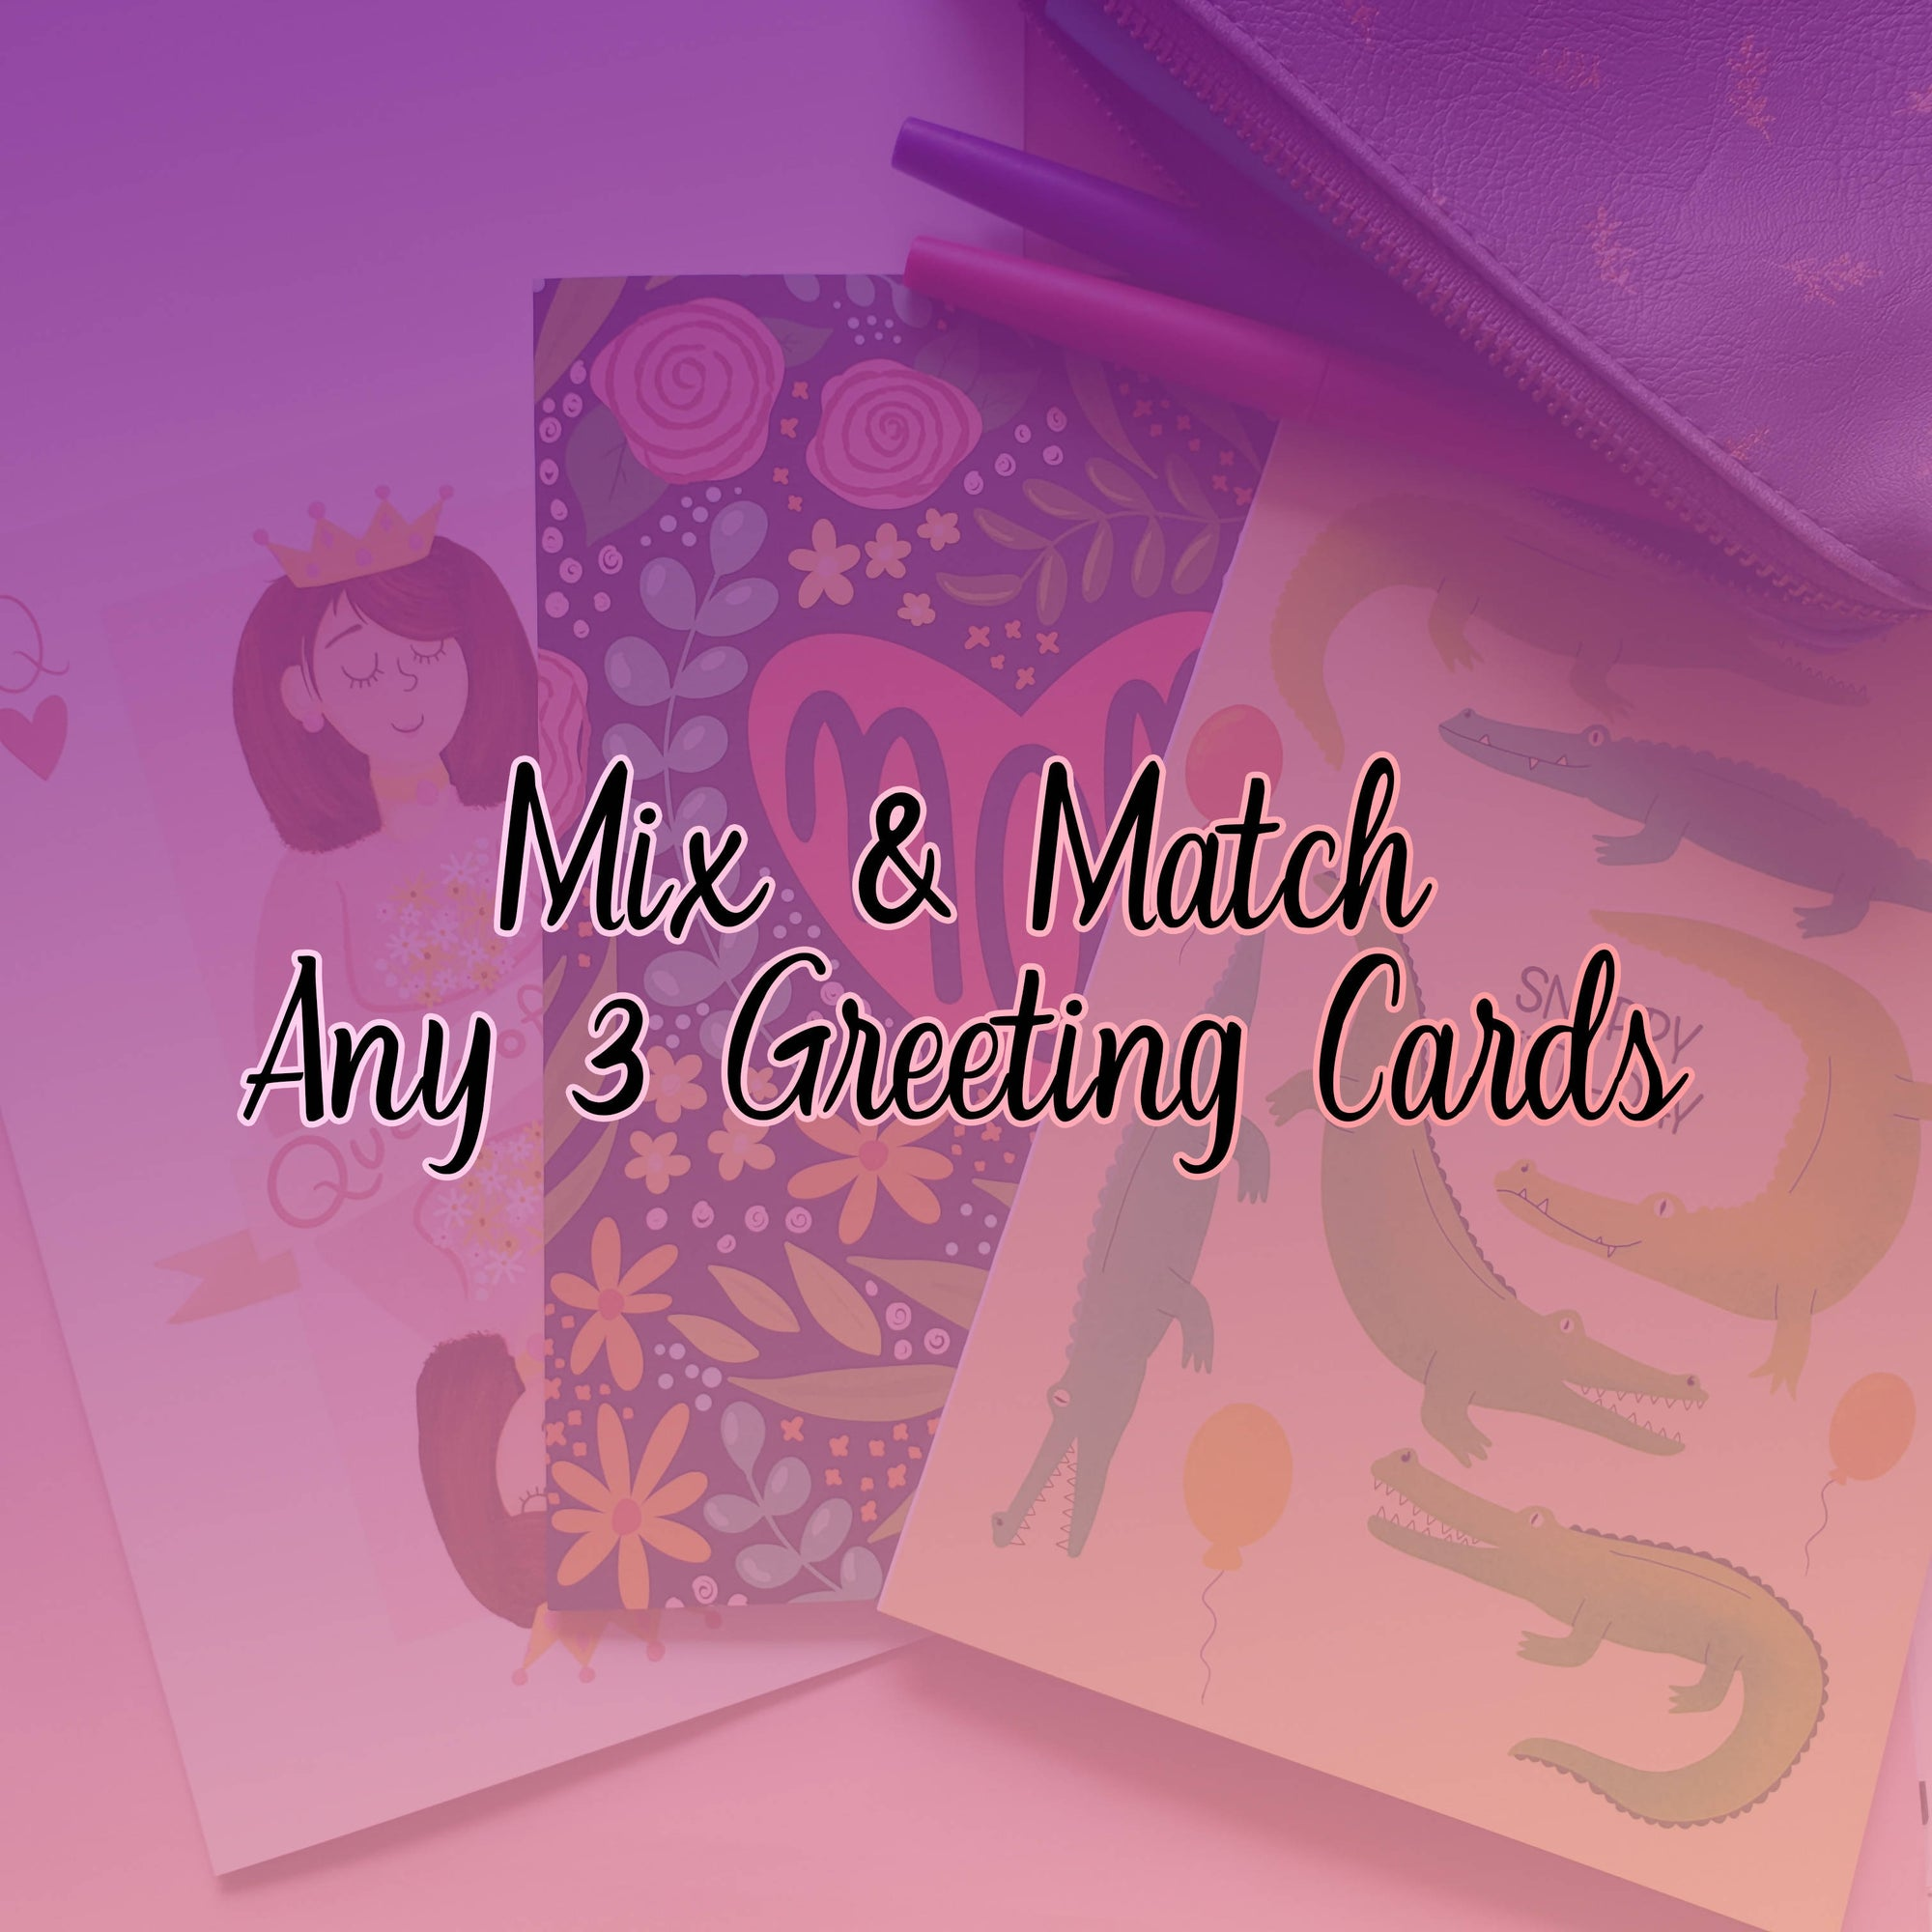 Mix and Match Any 3 Greeting Cards